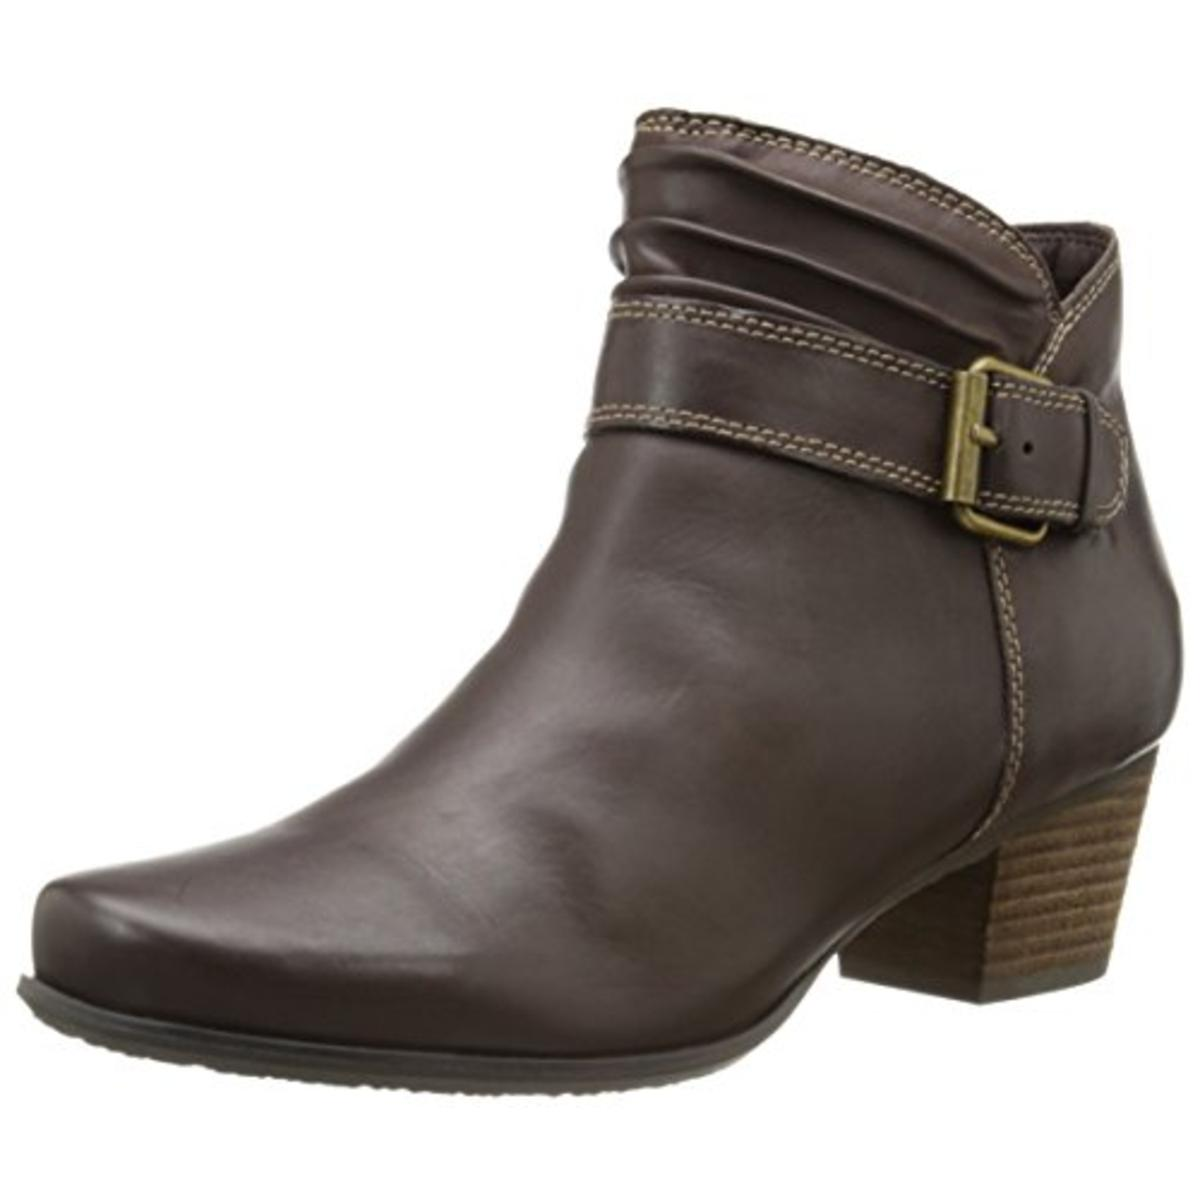 SoftWalk Womens Dublin Leather Belted Ankle Boots by SoftWalk